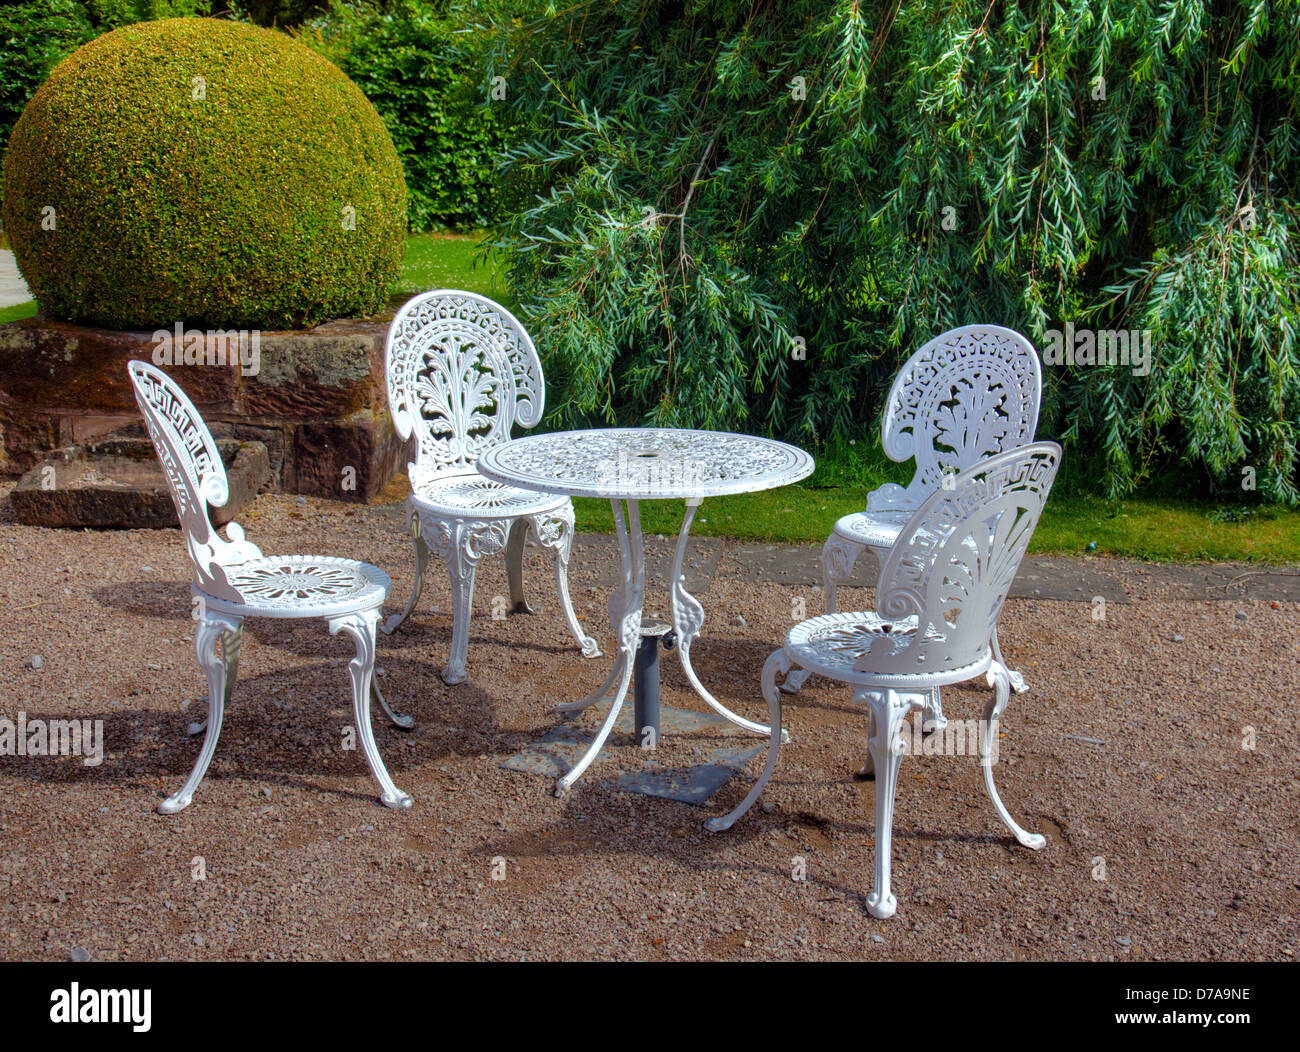 Awe Inspiring Wrought Iron Outdoor Furniture Stock Photos Wrought Iron Pdpeps Interior Chair Design Pdpepsorg